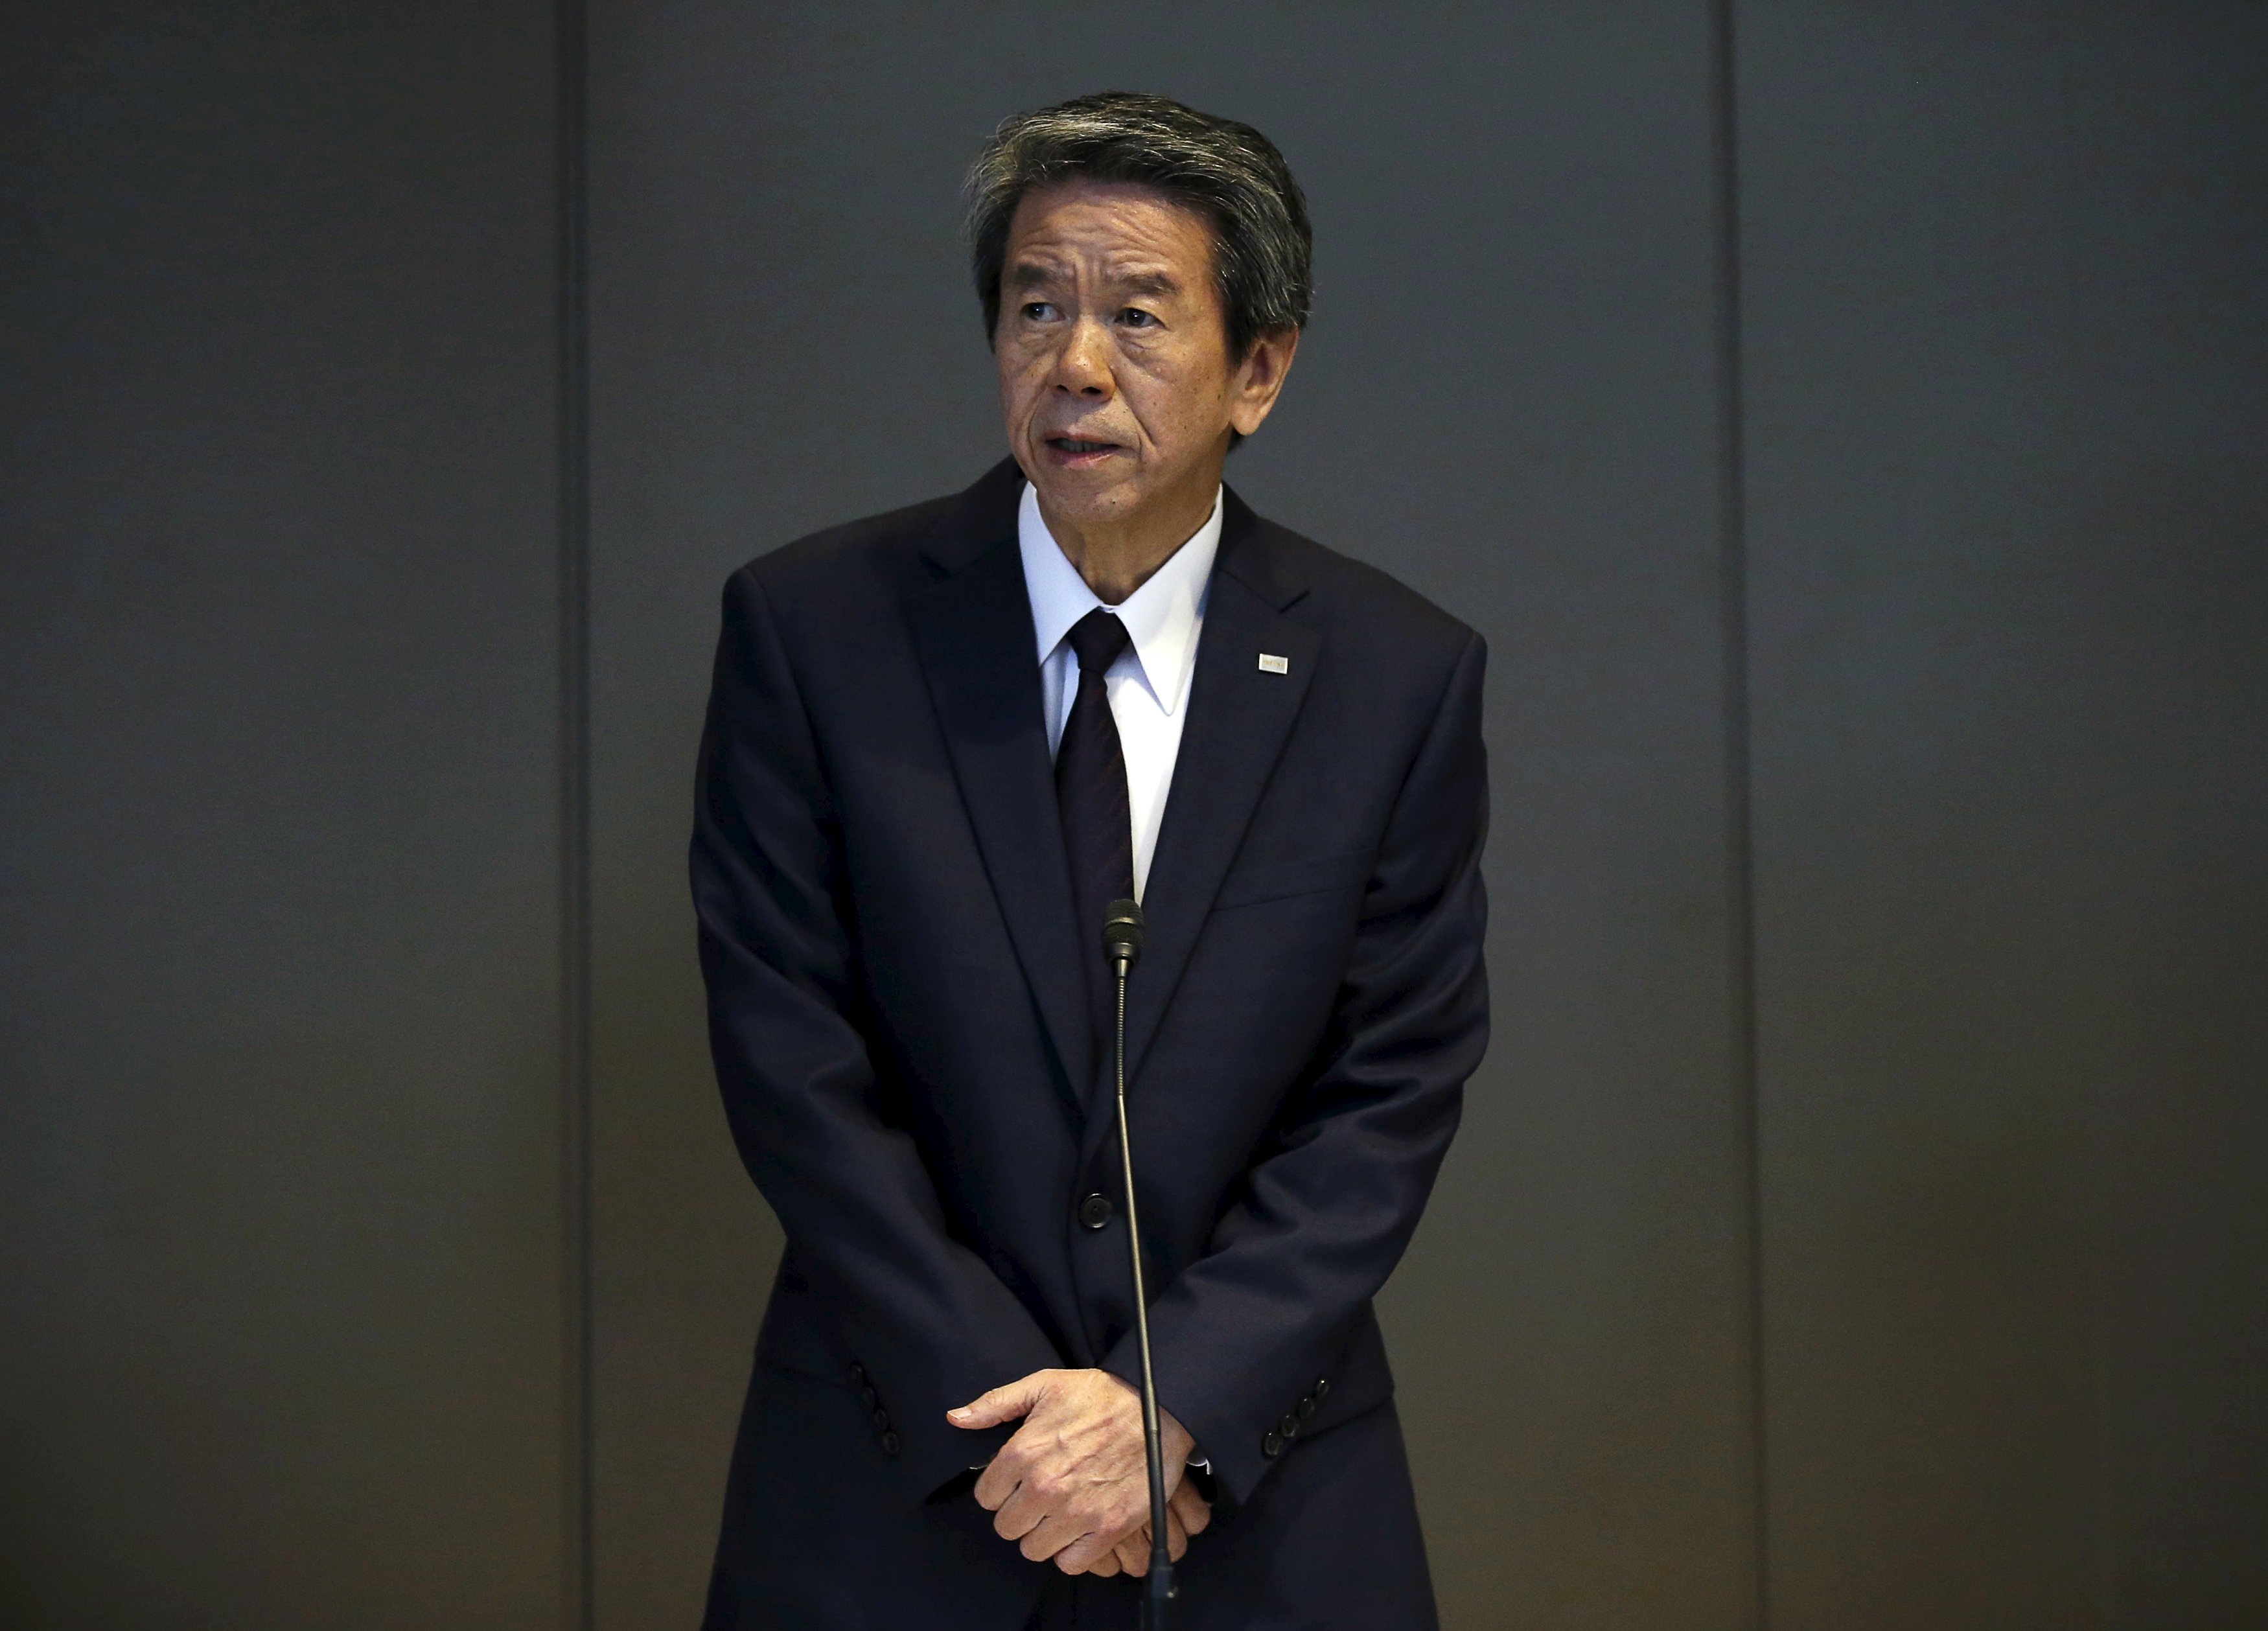 Toshiba Corp President and Chief Executive Officer Hisao Tanaka attends a news conference at the company headquarters in Tokyo July 21, 2015. Japan's Toshiba Corp said Tanaka was stepping down on Tuesday after an independent investigation found he had been aware the company had been inflating its profits over a number of years. Photo: Reuters